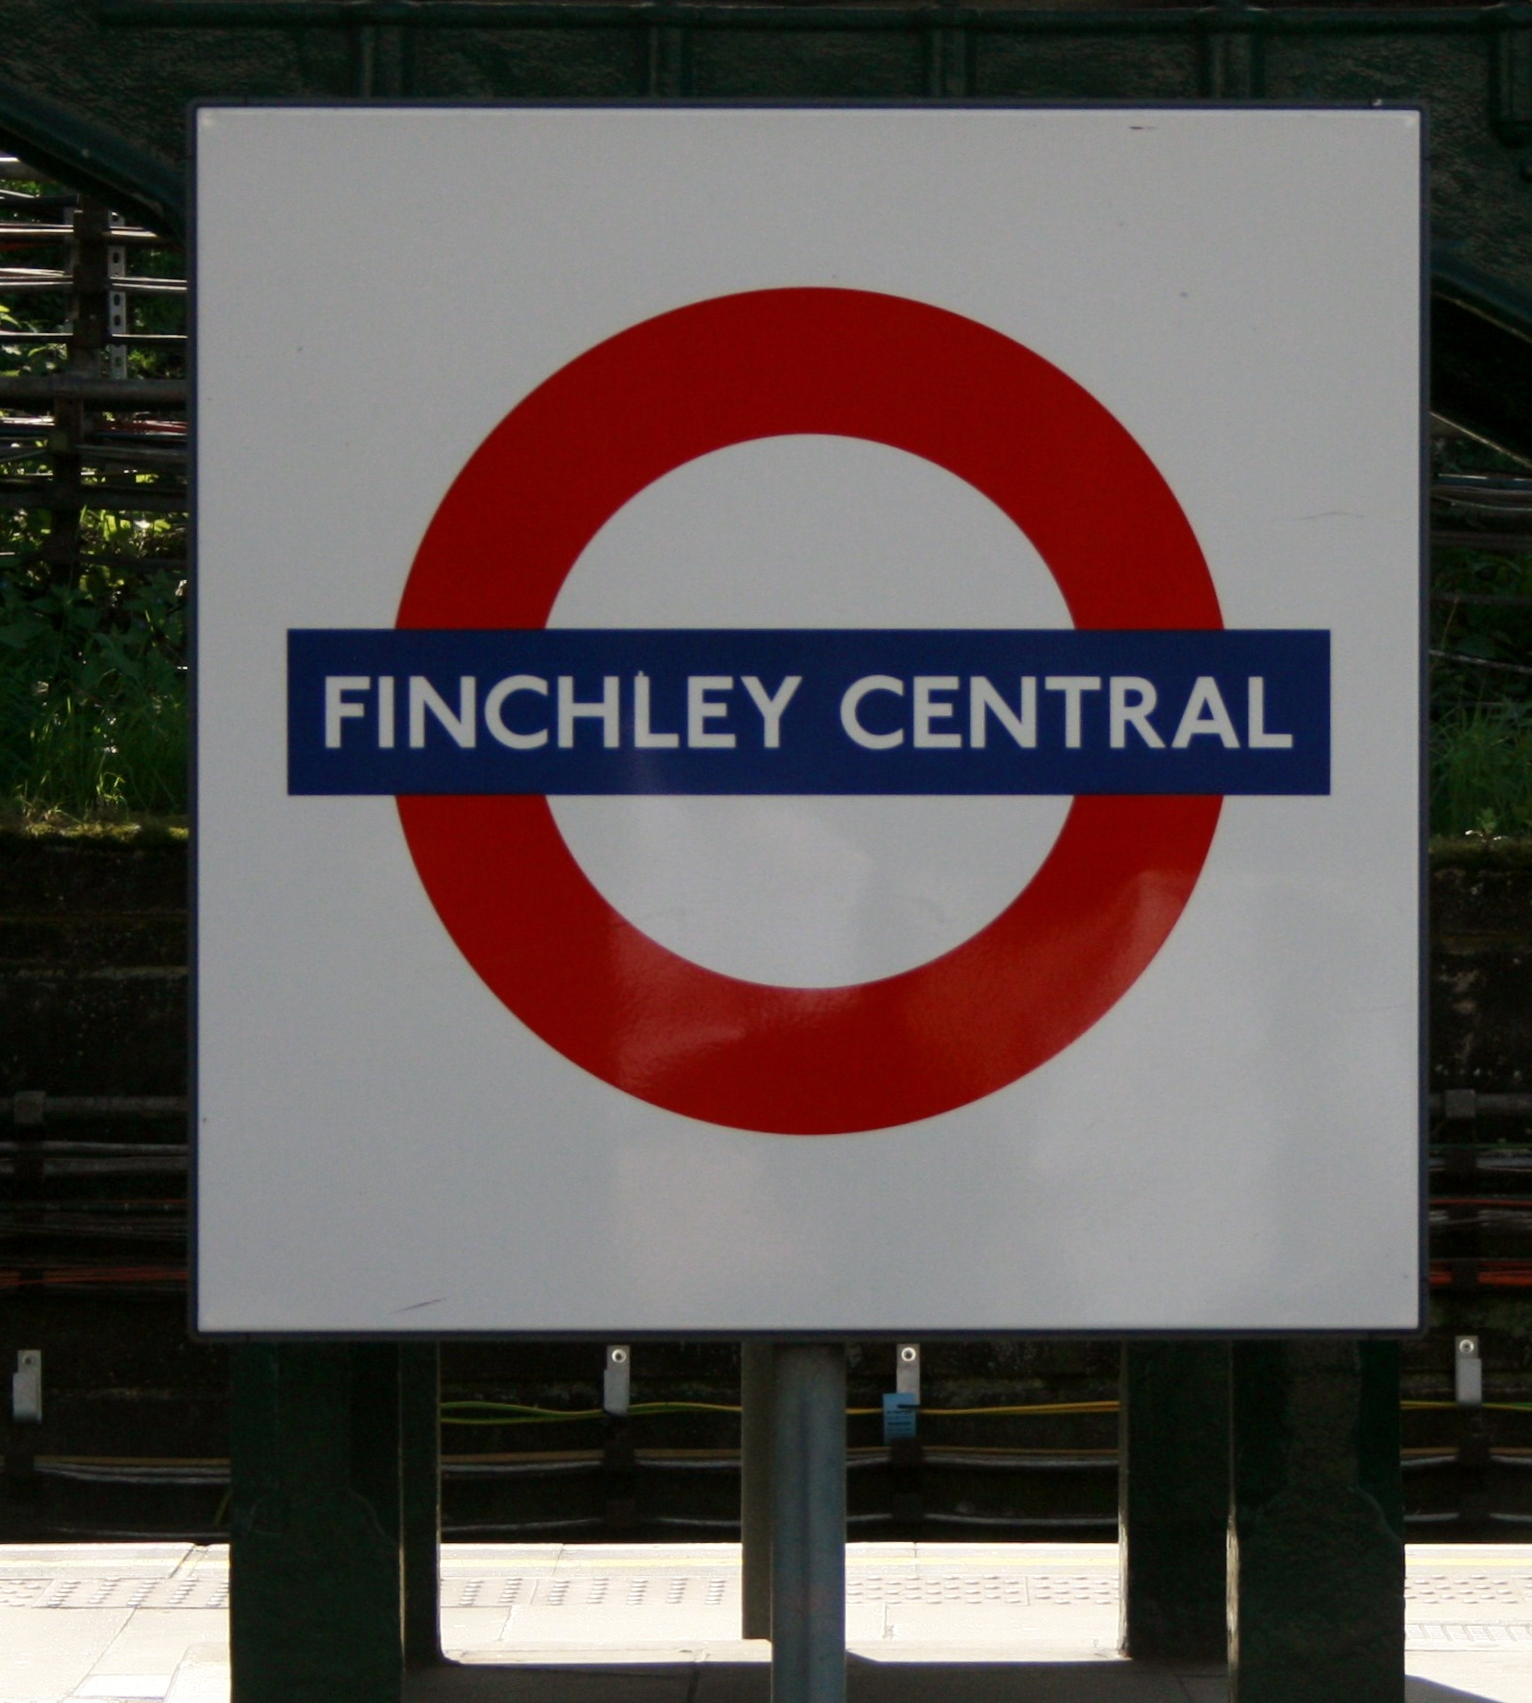 Finchley Central Tube Station London